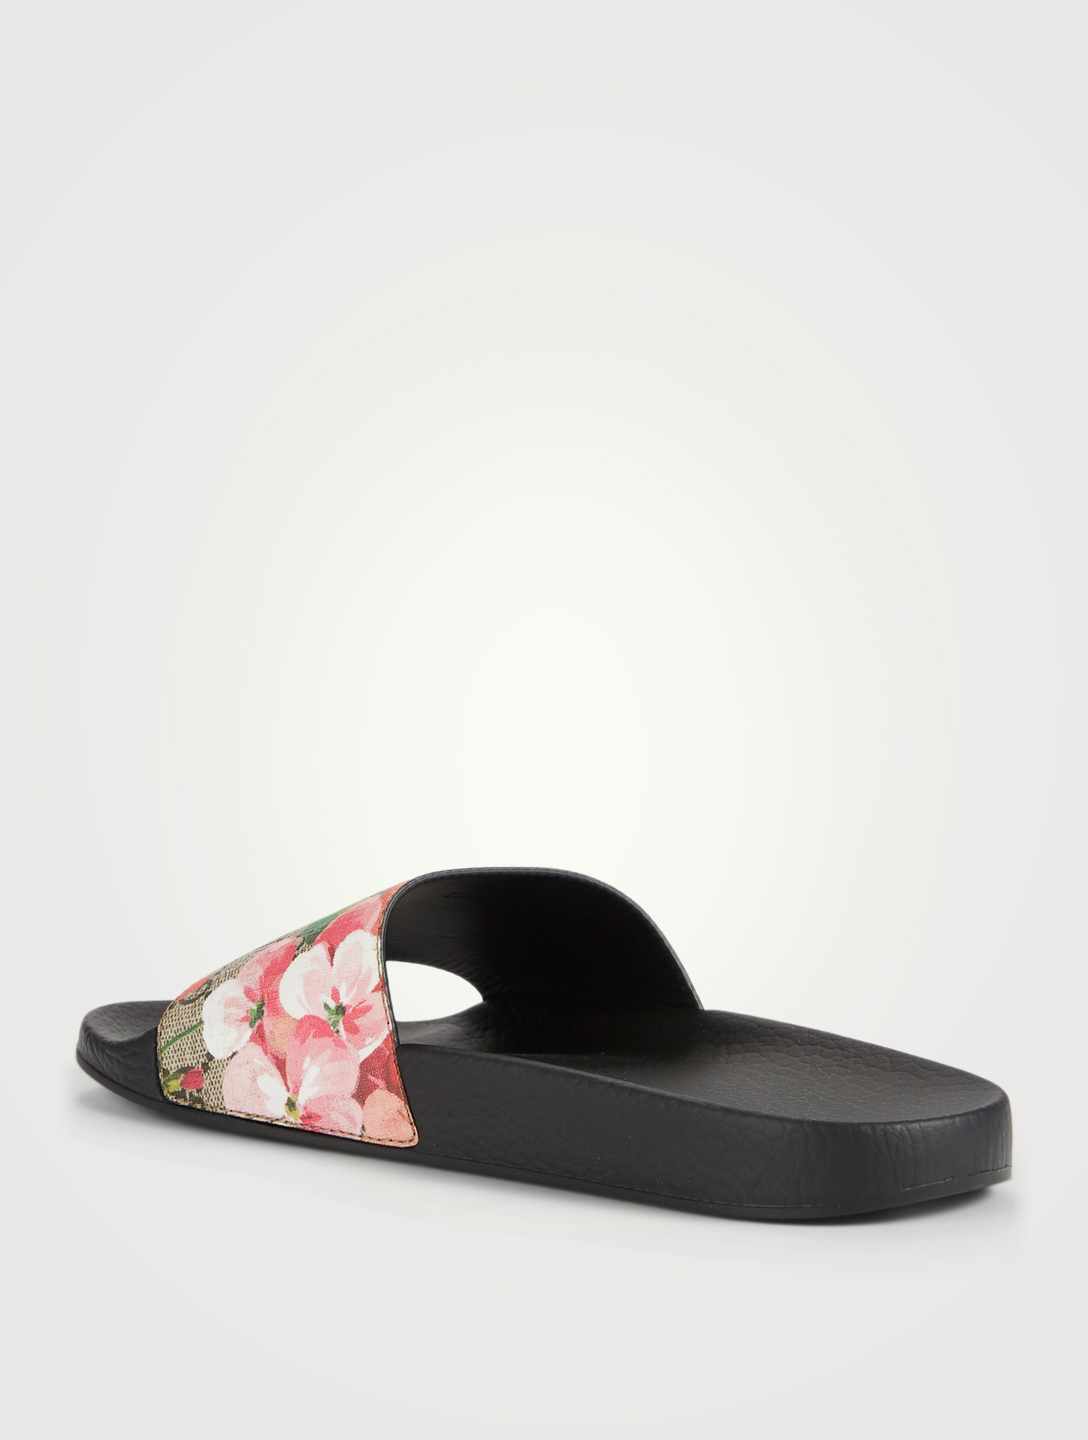 839161a5922 ... GUCCI GG Blooms Supreme Slide Sandals Women s Neutral ...